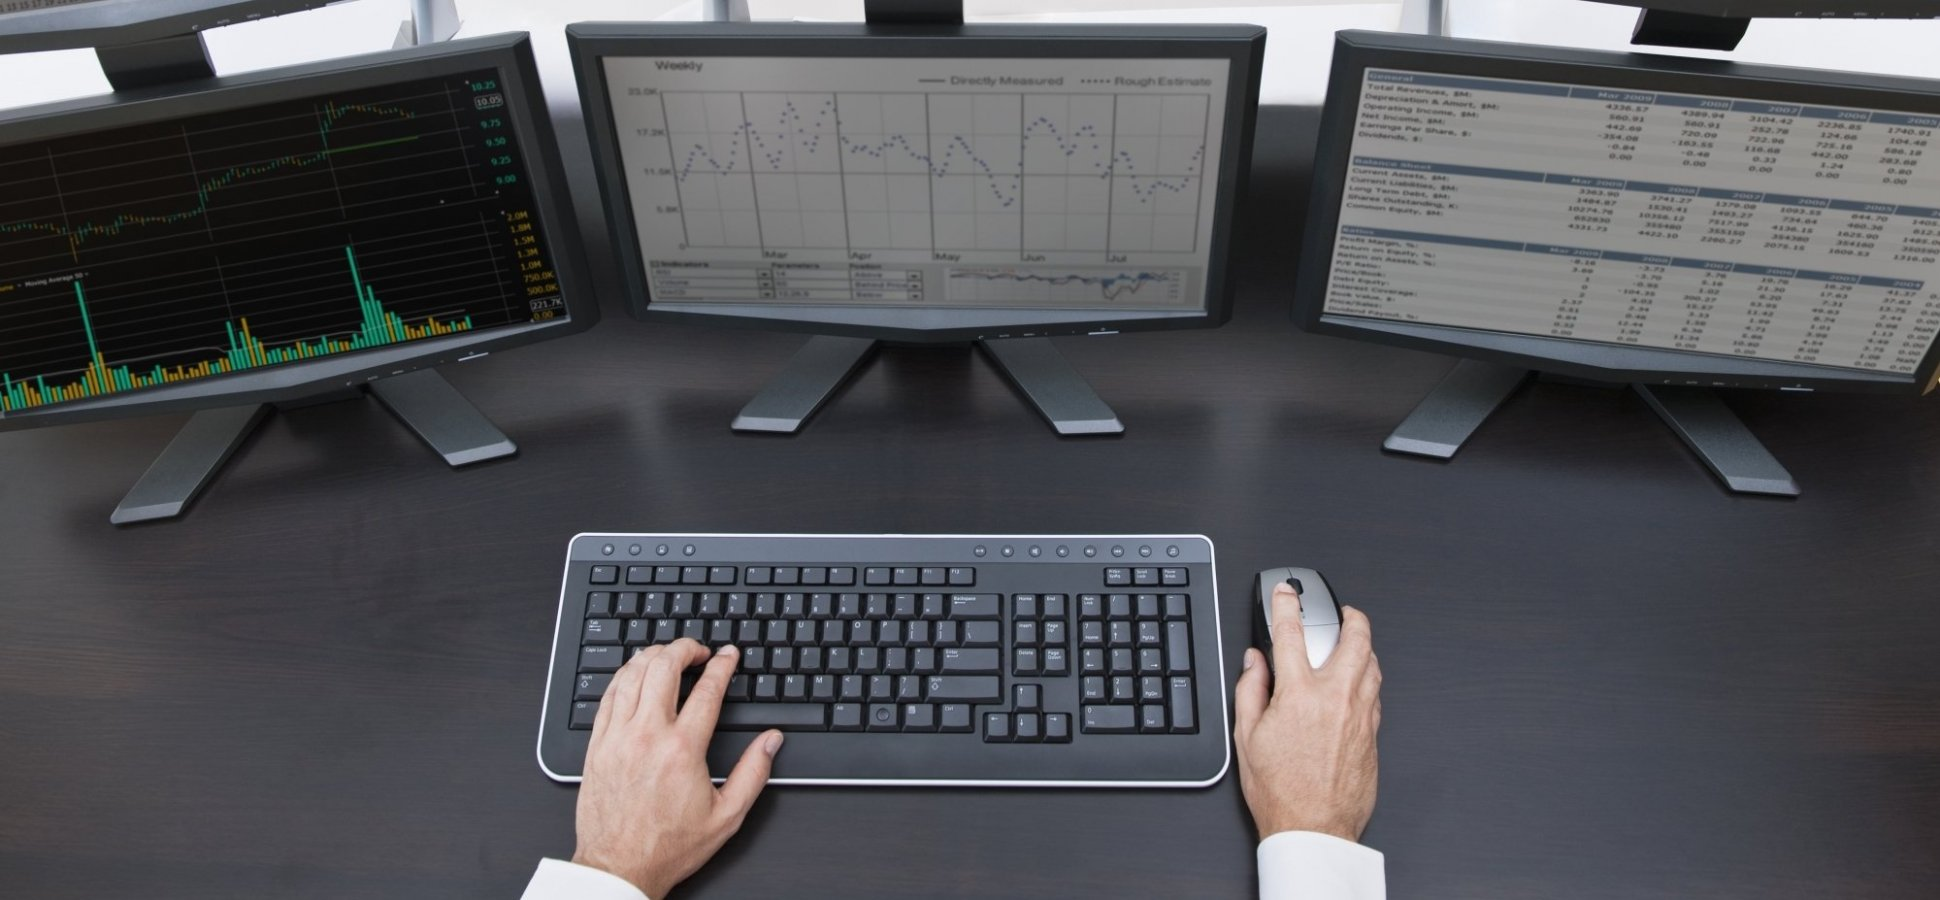 Why I Use 3 Monitors to Boost Productivity (And You Should, Too)